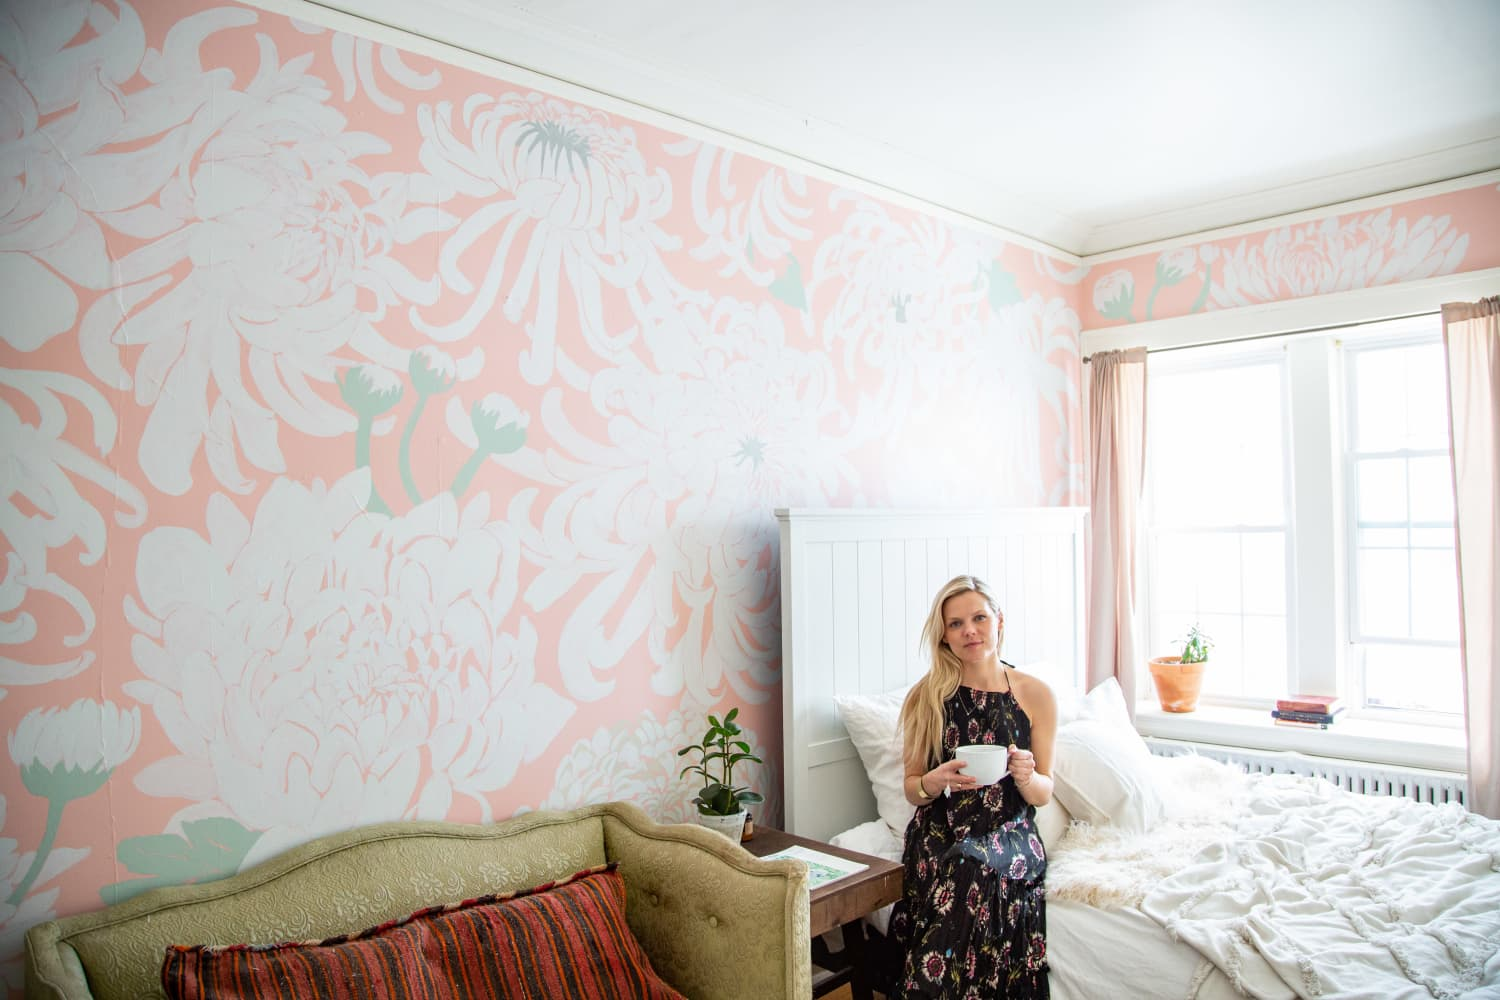 This Home Has Some of the Most Beautiful Hand-Painted Wallpaper Ever